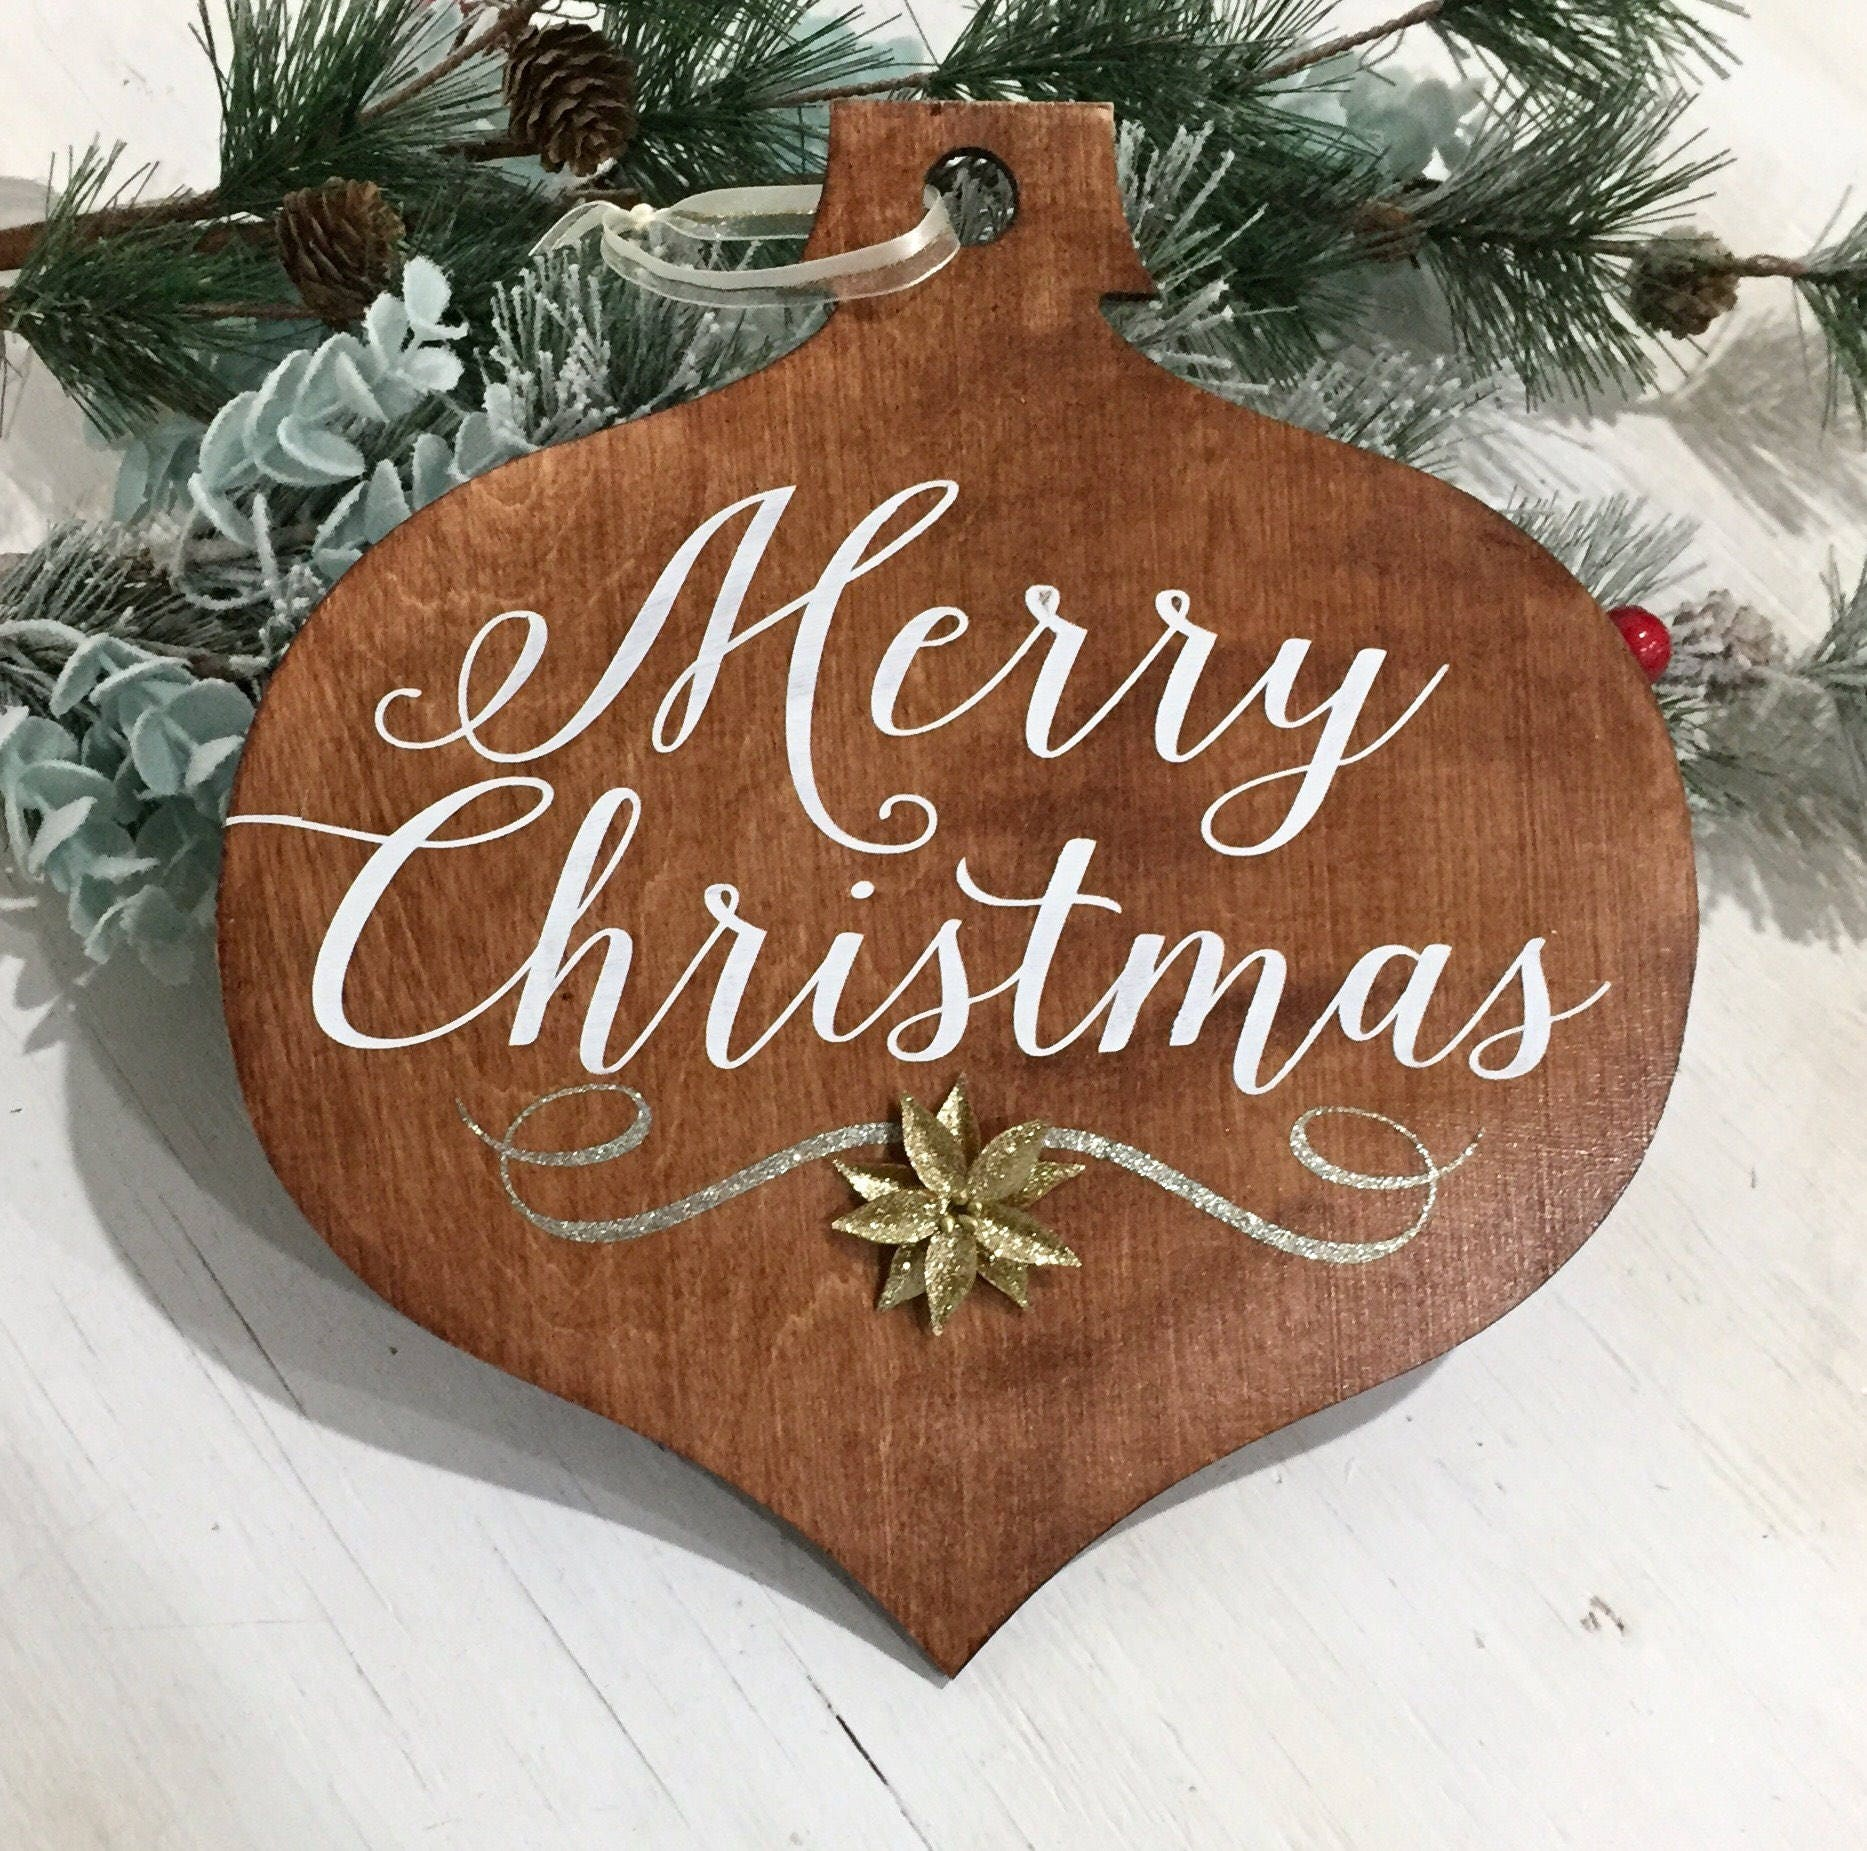 Christmas wooden christmas memories hanging sign sold out - Christmas Door Hanger Merry Christmas Wood Wall Decor Holiday Home Decorations Christmas Gift Merry Christmas Sign